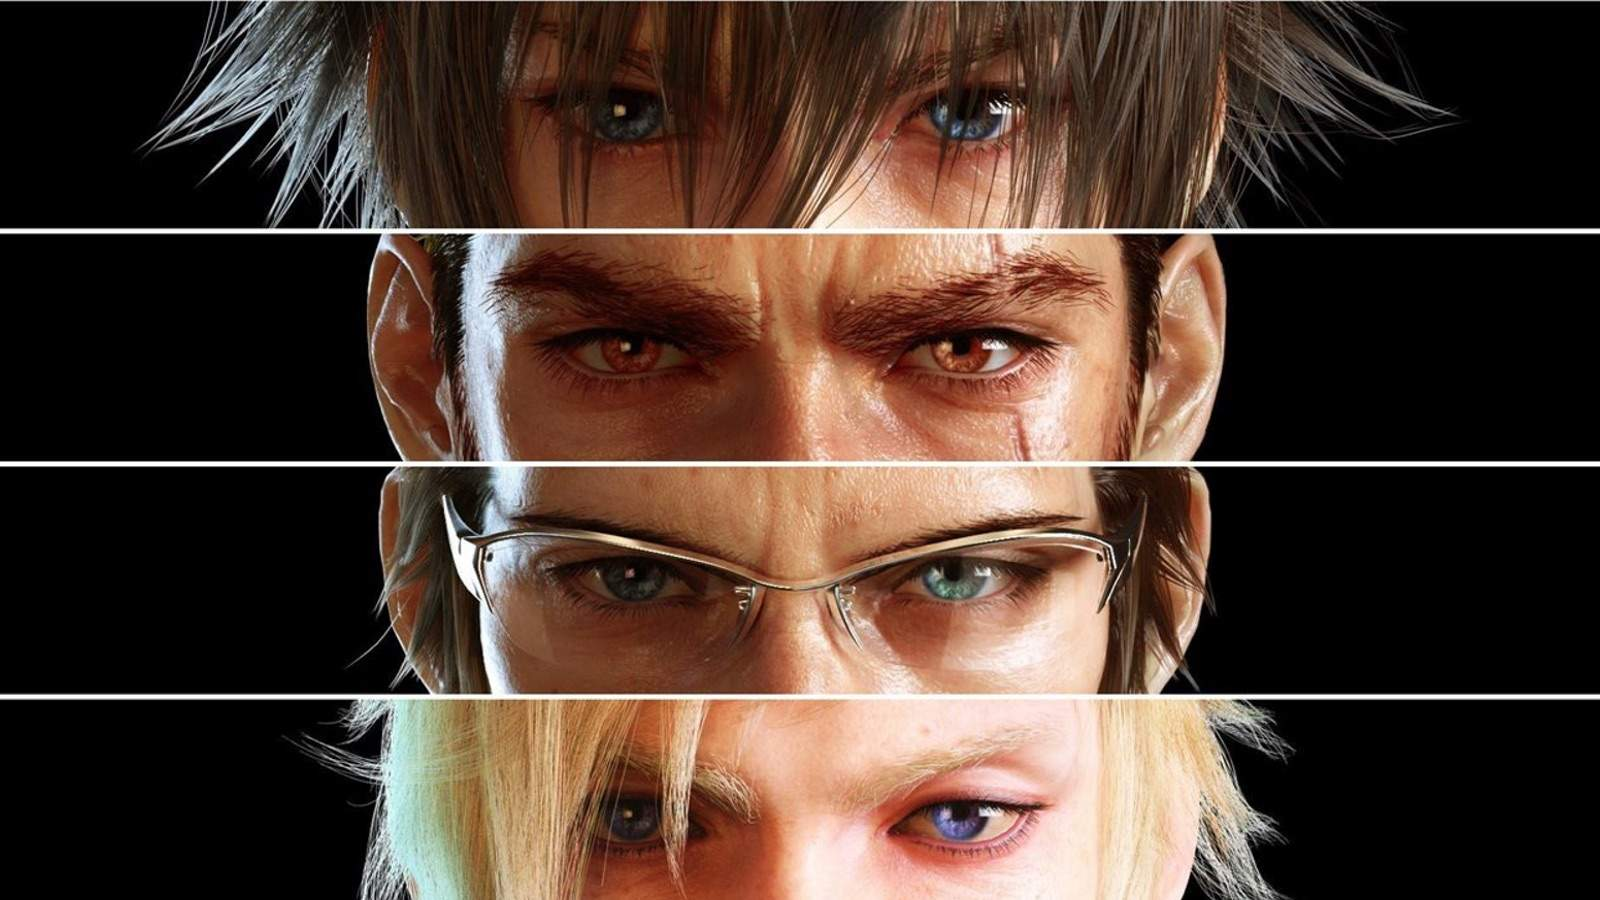 Final Fantasy Xv Season Pass And Digital Console Exclusives Detailed